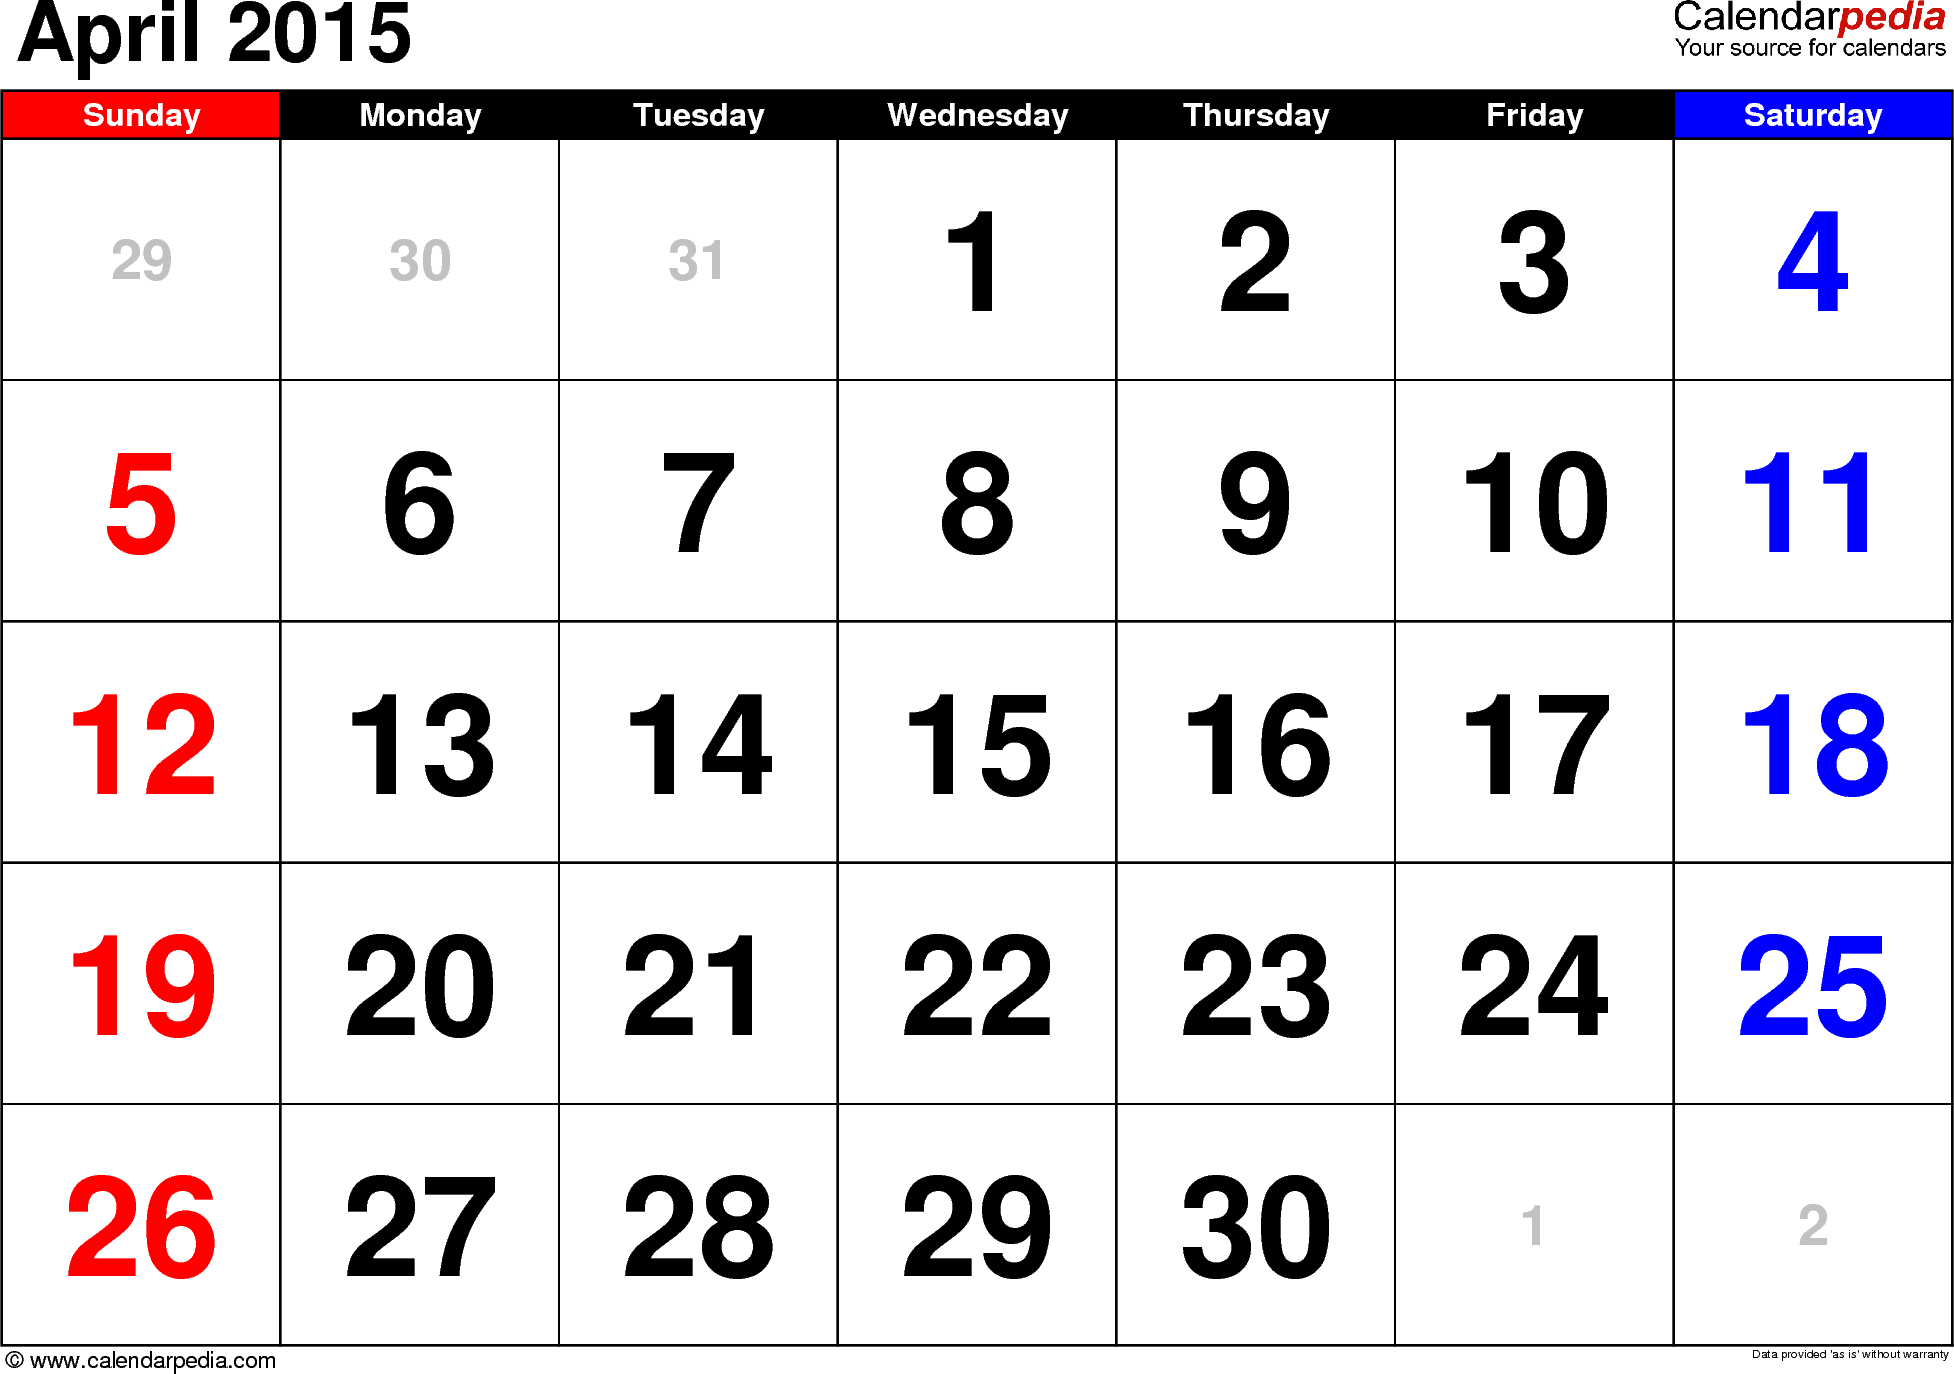 Calendar April 2015 : April calendars for word excel pdf